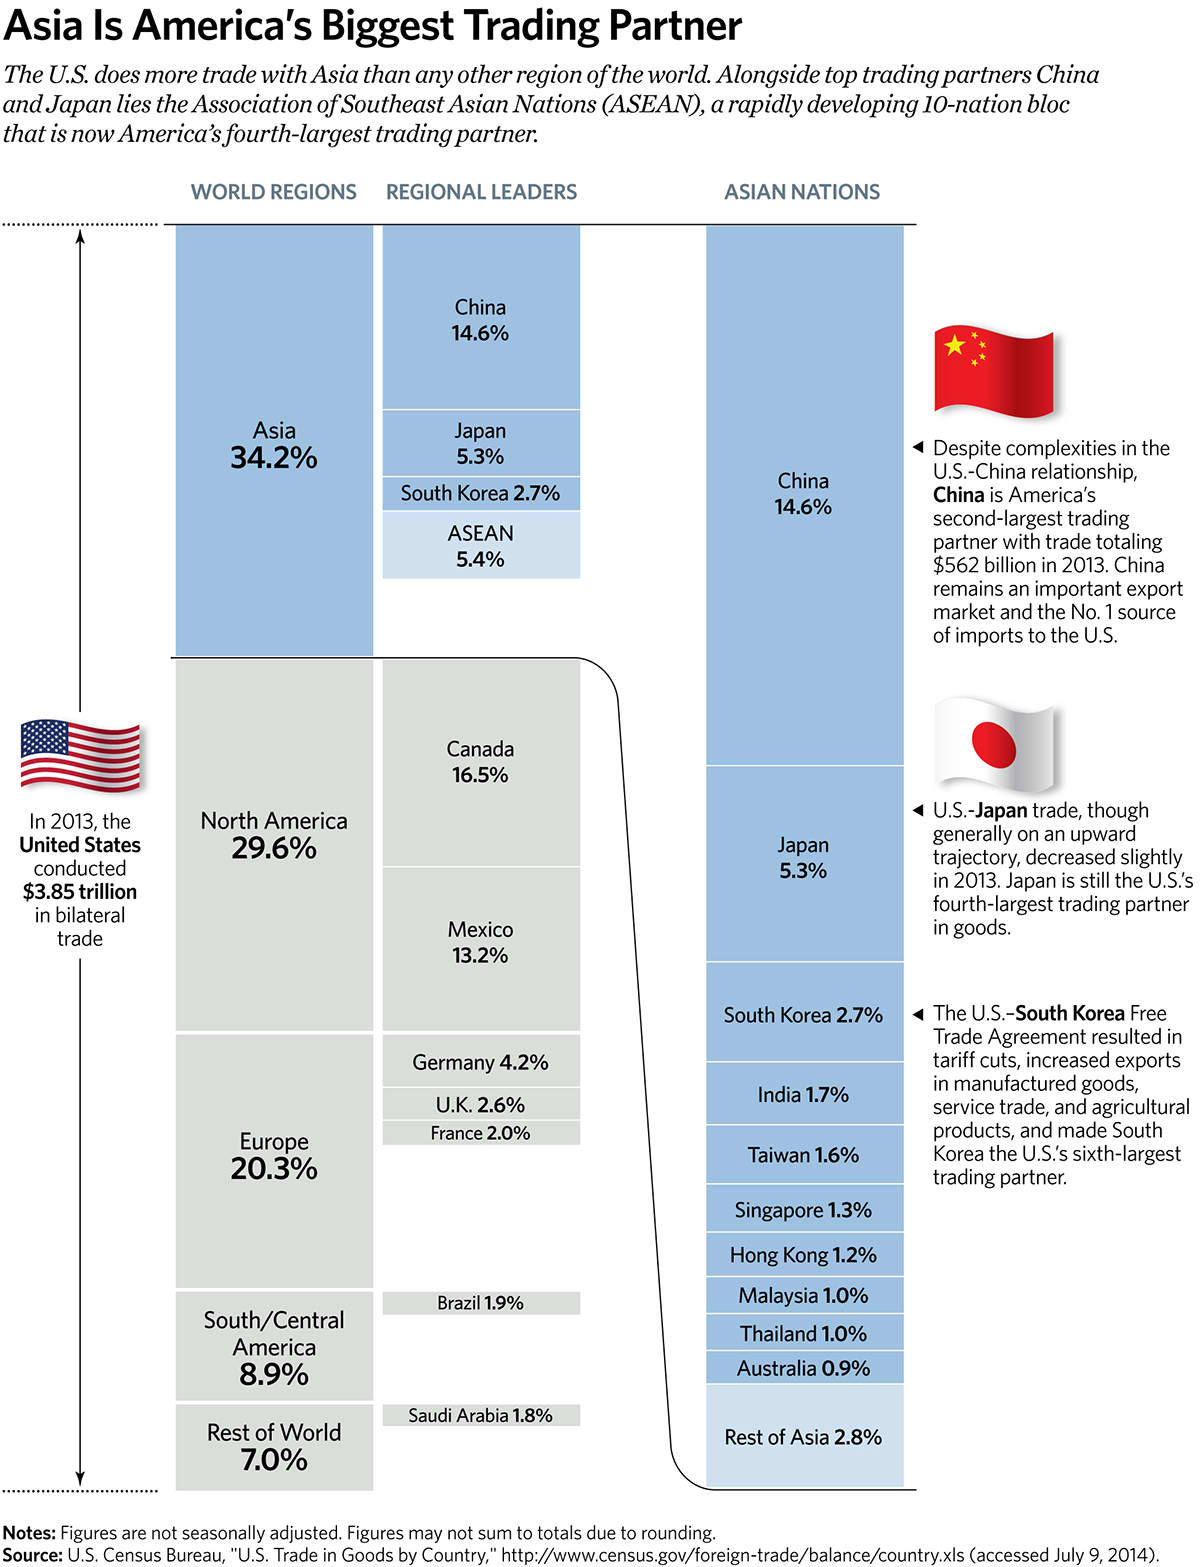 Asia Is America's Biggest Trading Partner